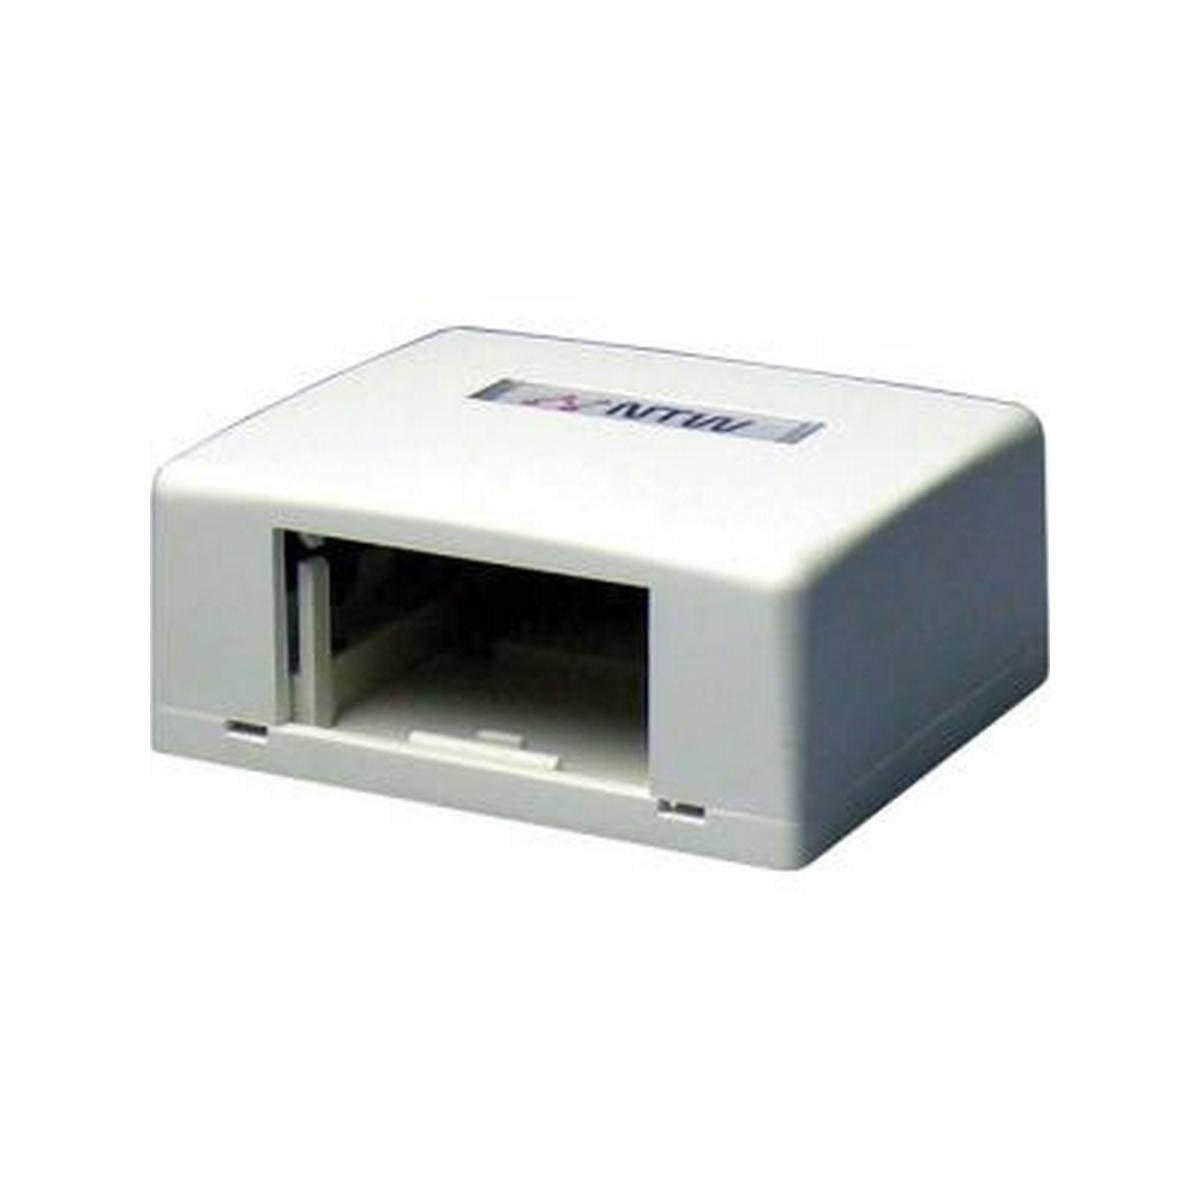 NTW 3UN-SB1W UniMedia Surface Mount Box with 1 Outlet